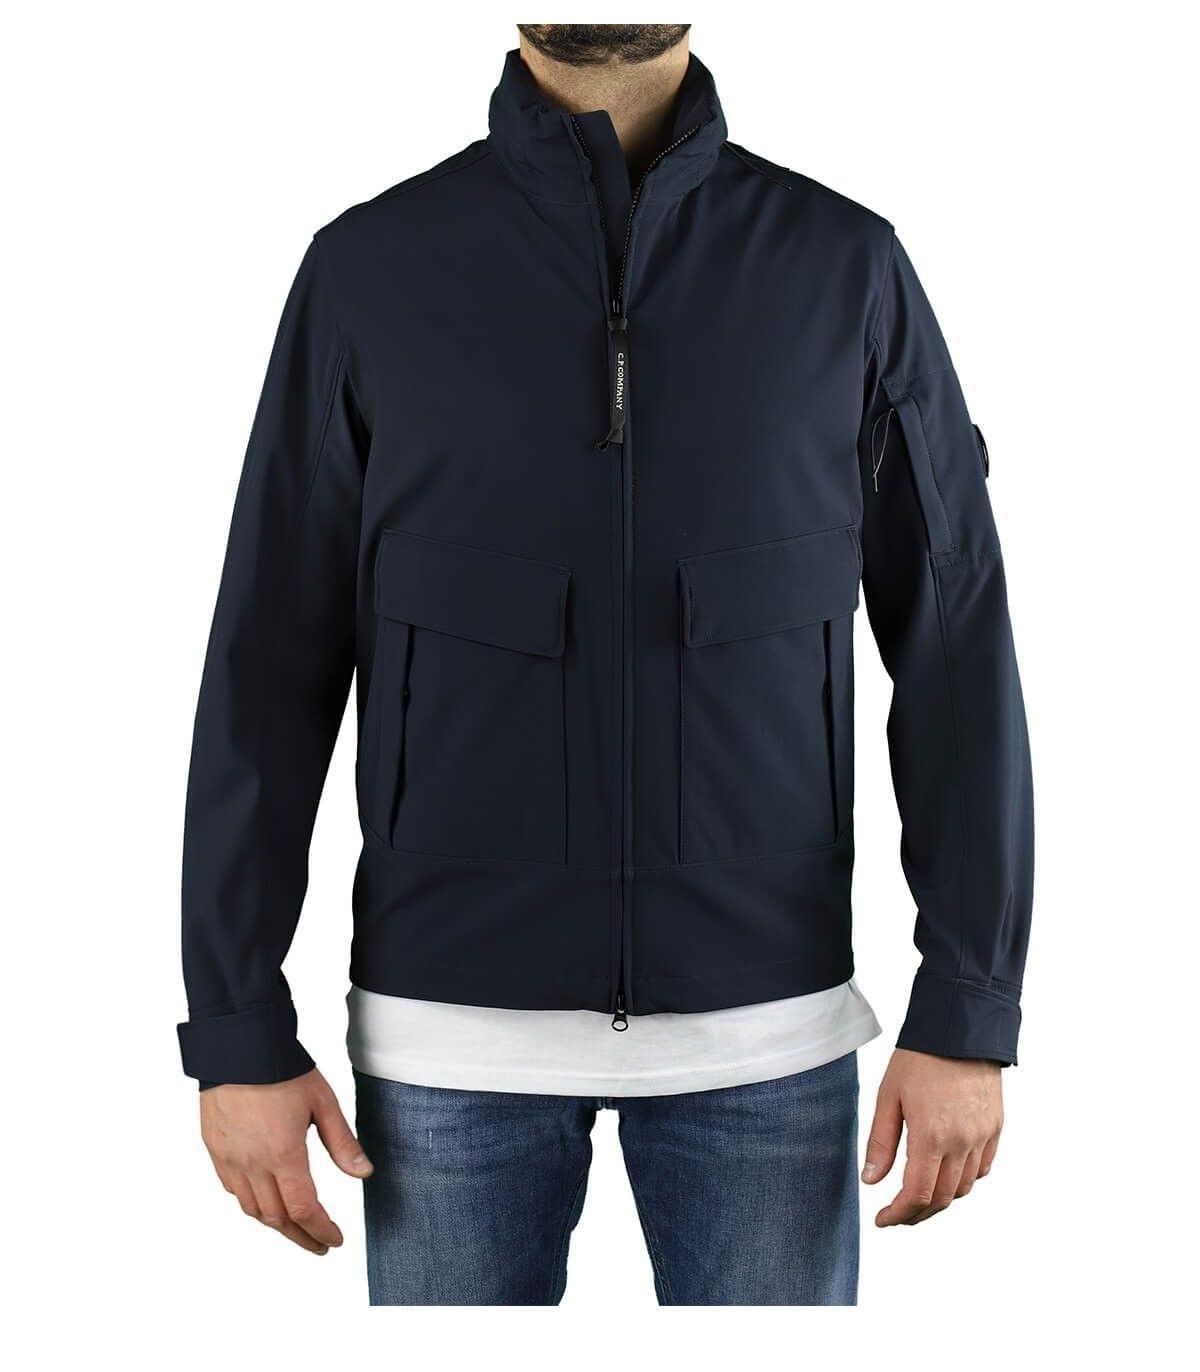 C.p. Company Jackets CP COMPANY MEN'S 10CMOW020A005968A888 BLUE POLYAMIDE OUTERWEAR JACKET